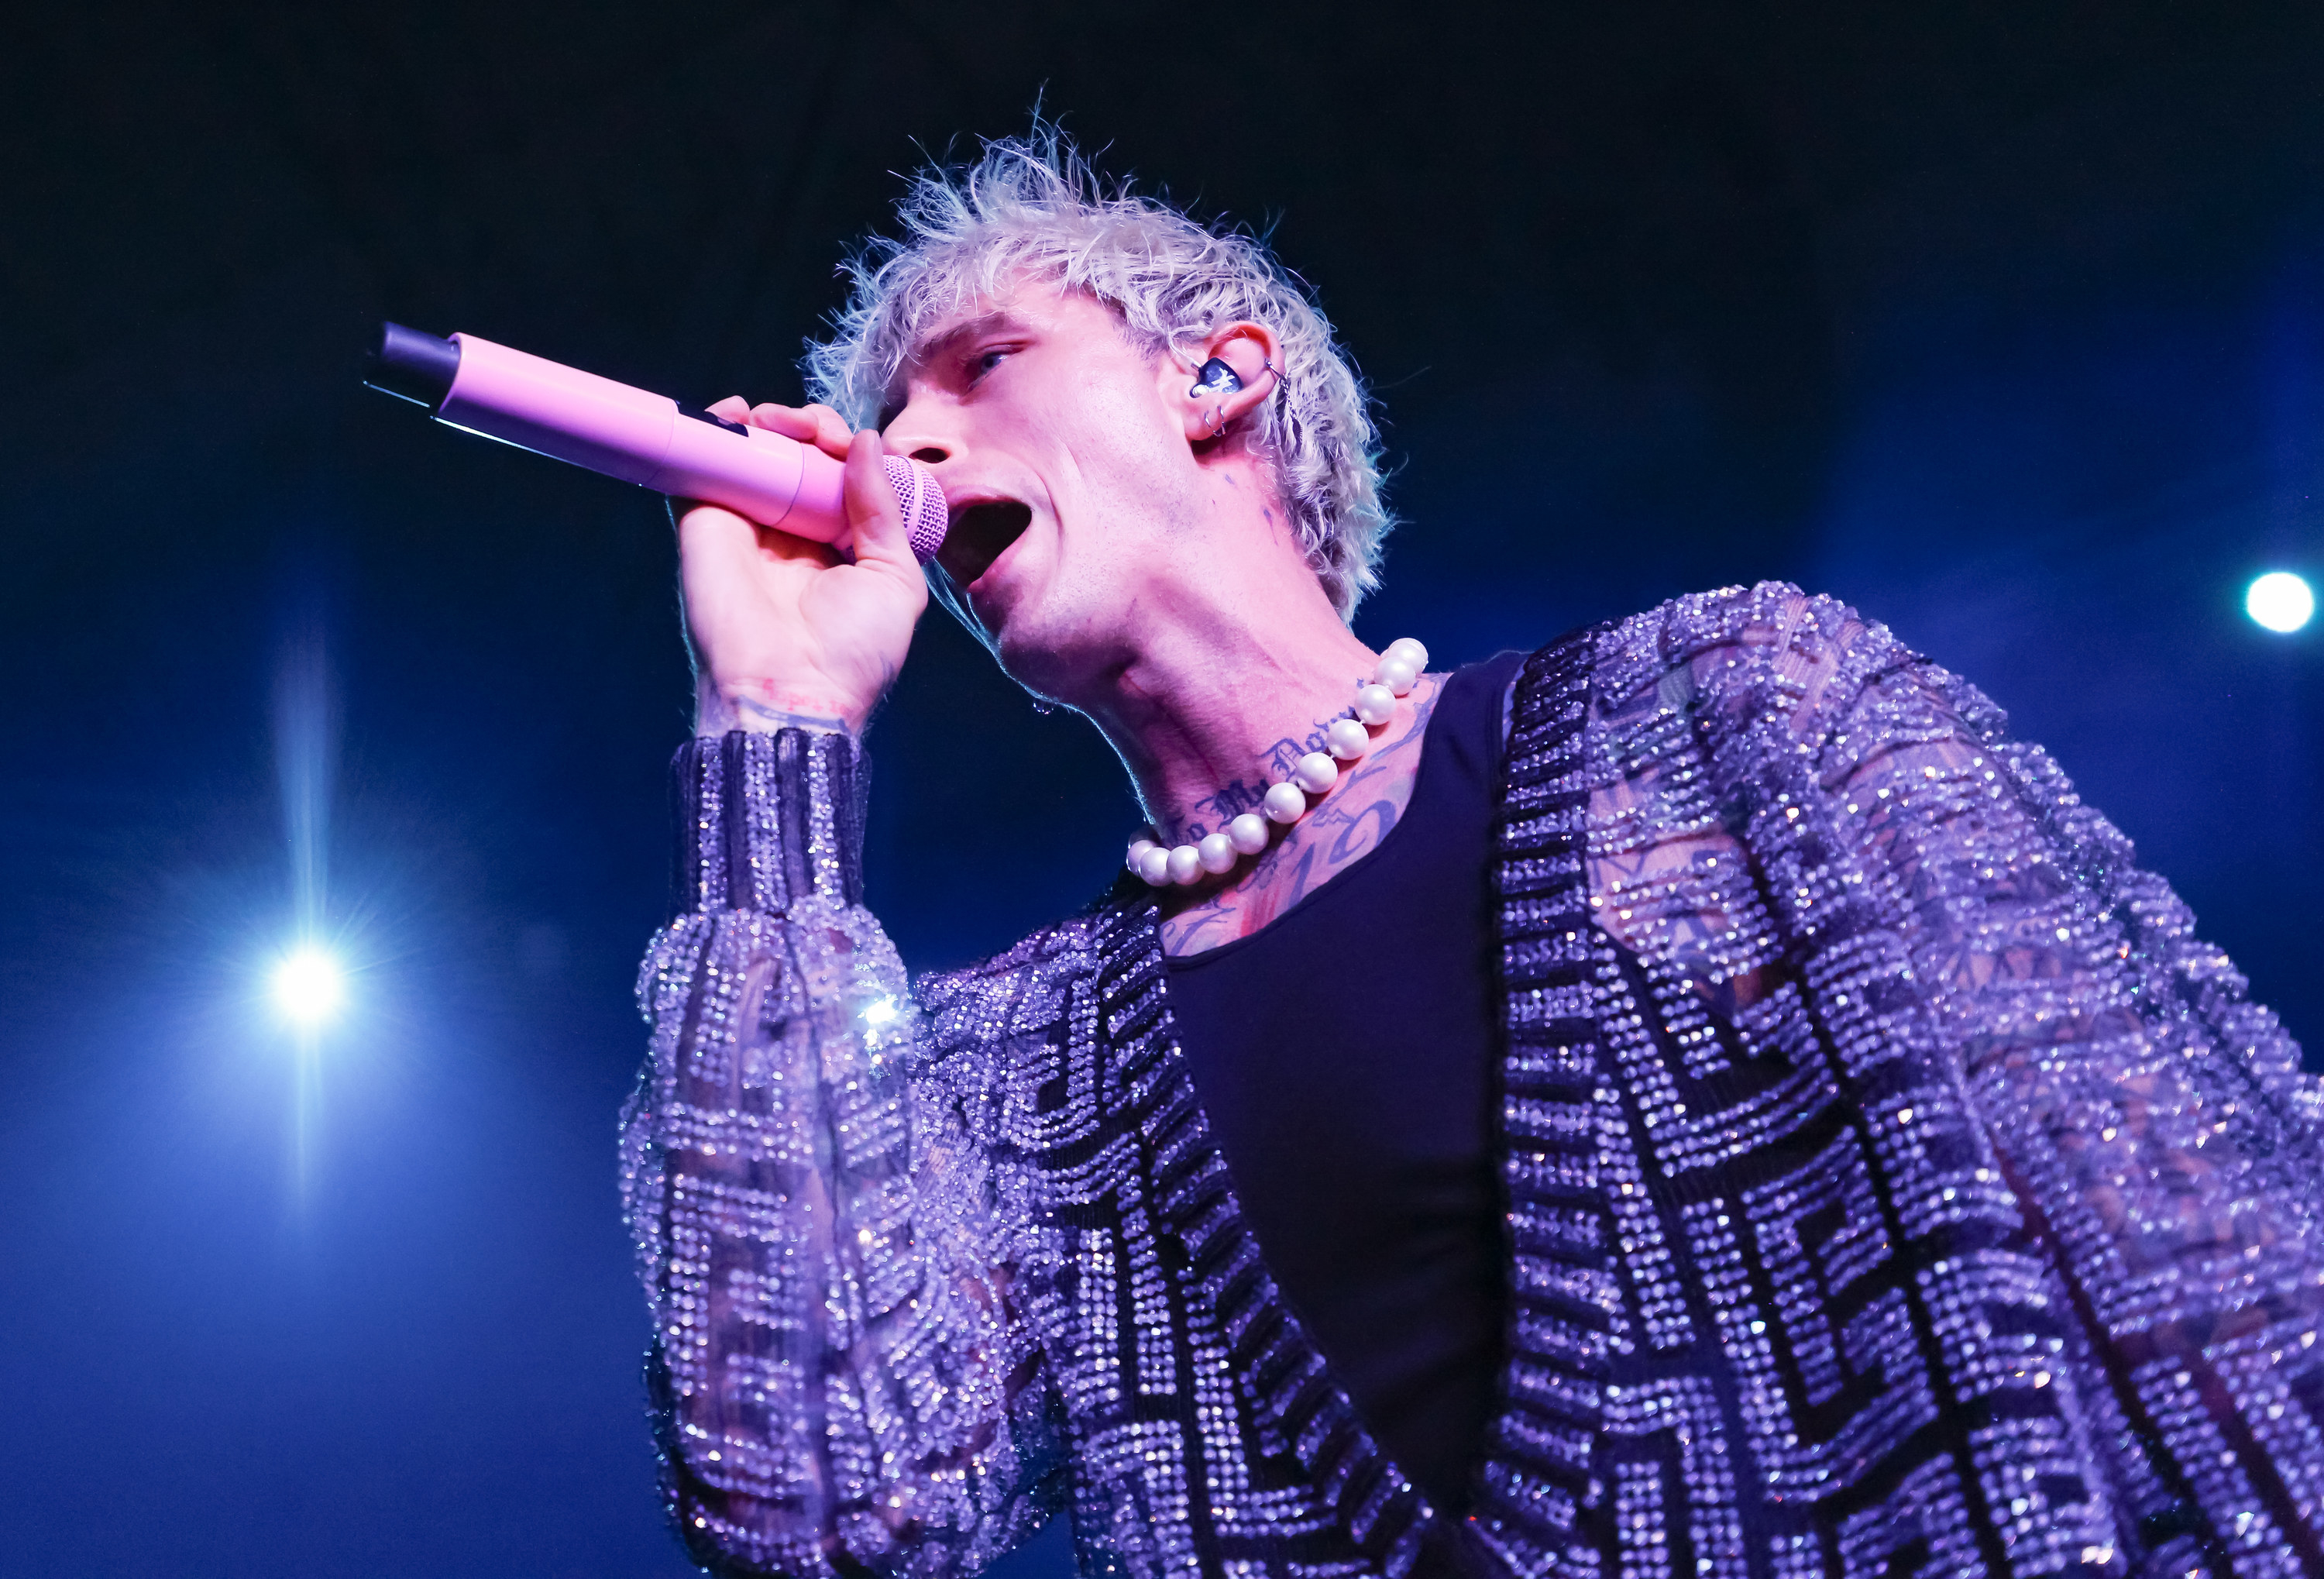 Machine Gun Kelly is photographed singing into a microphone onstage